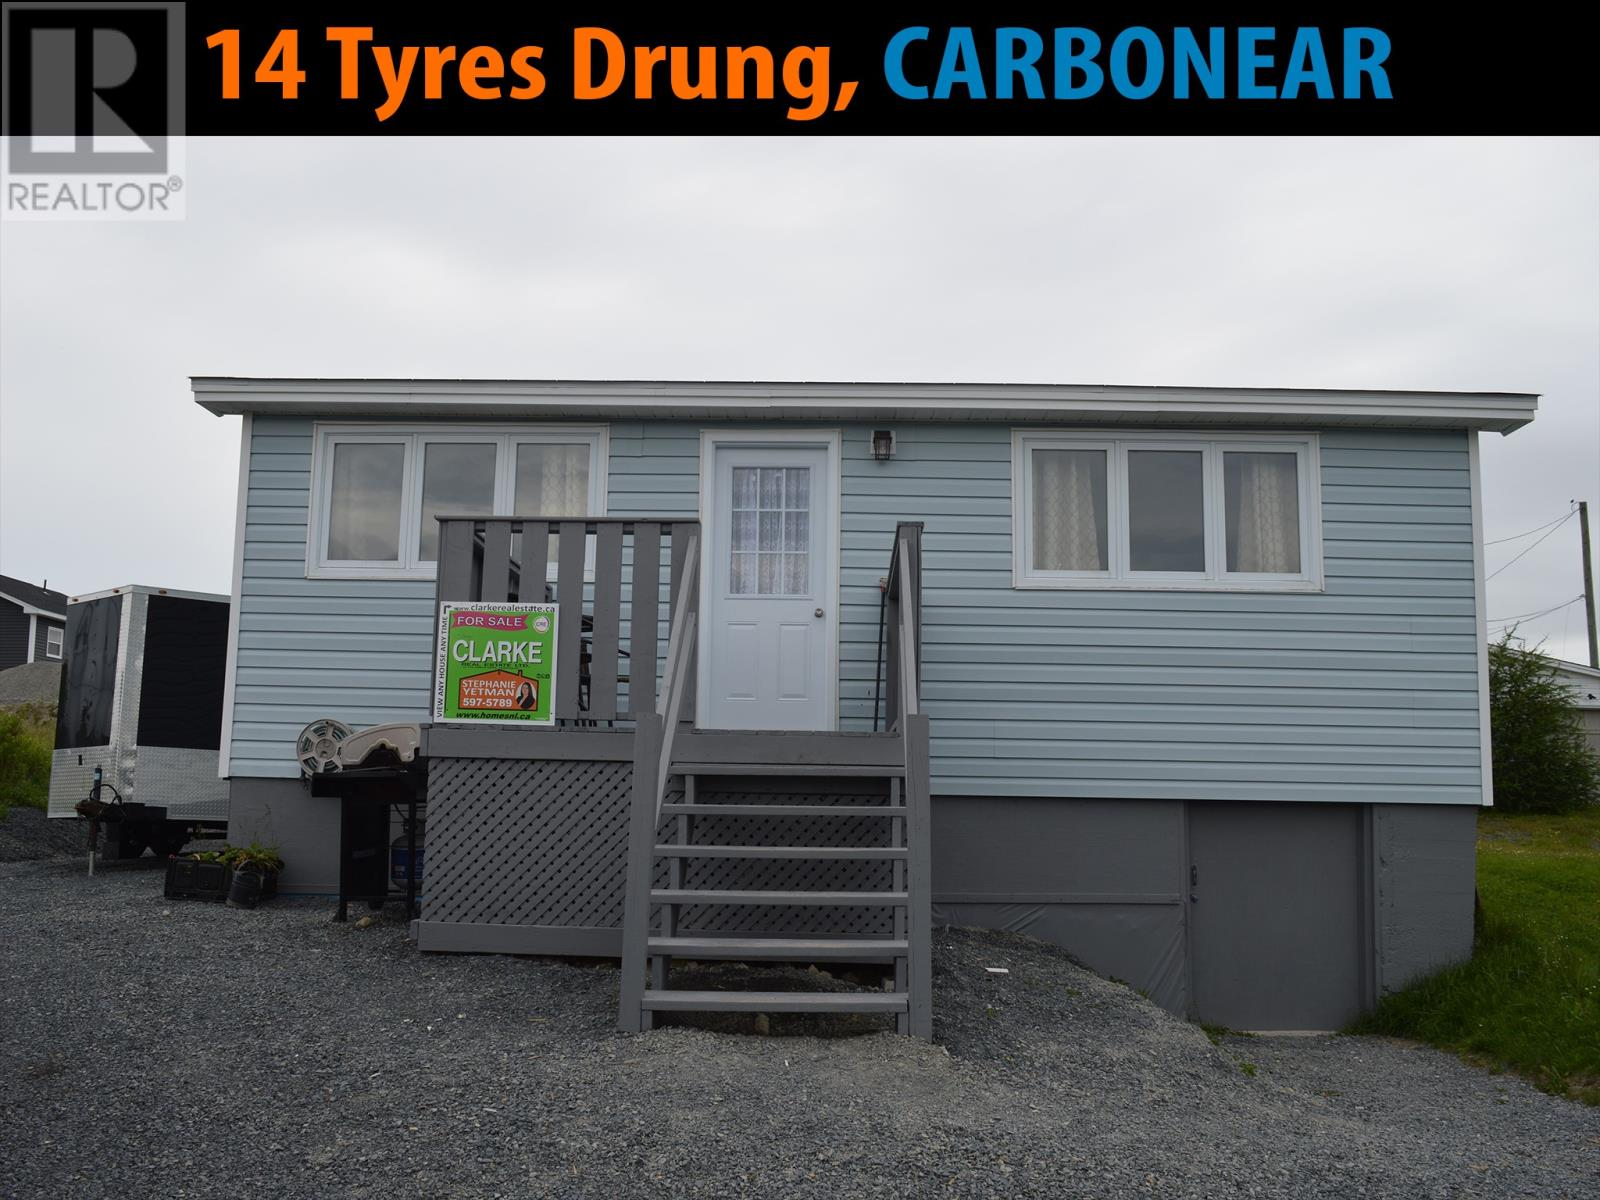 Removed: Drung - 14 Tyres, Carbonear, NL - Removed on 2019-11-01 06:33:12